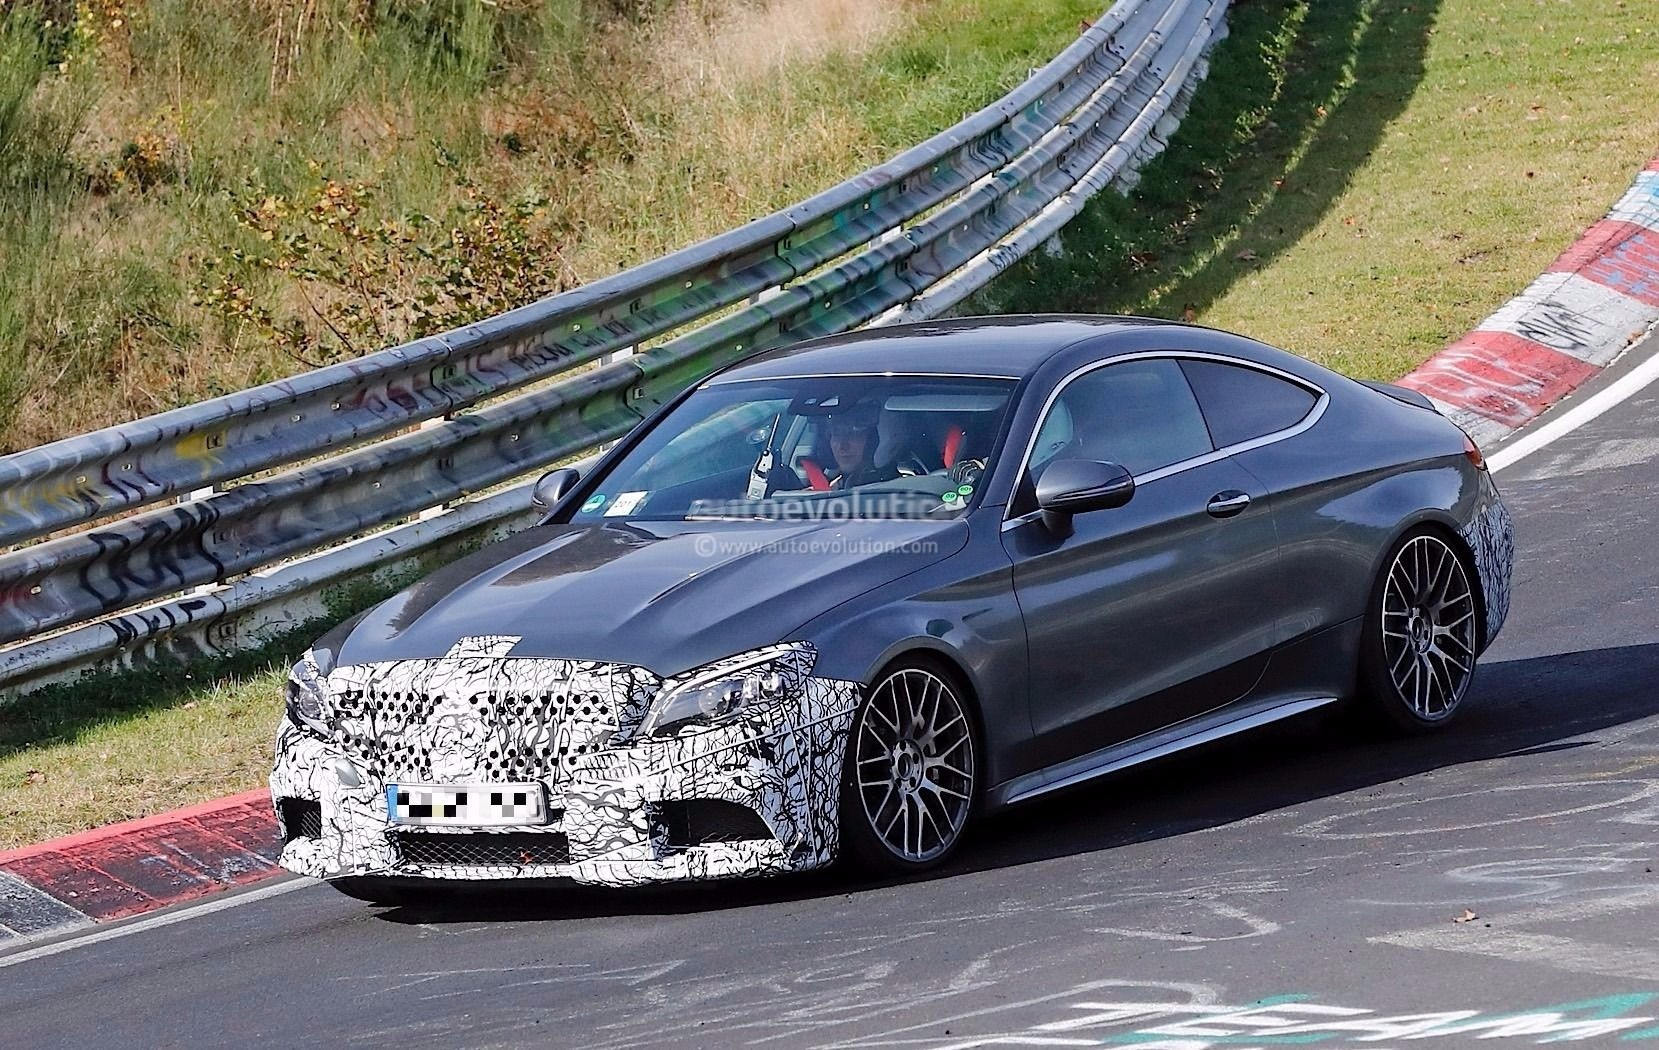 Spyshots 2019 Mercedes Amg C63 S Coupe Reportedly Gets Extra